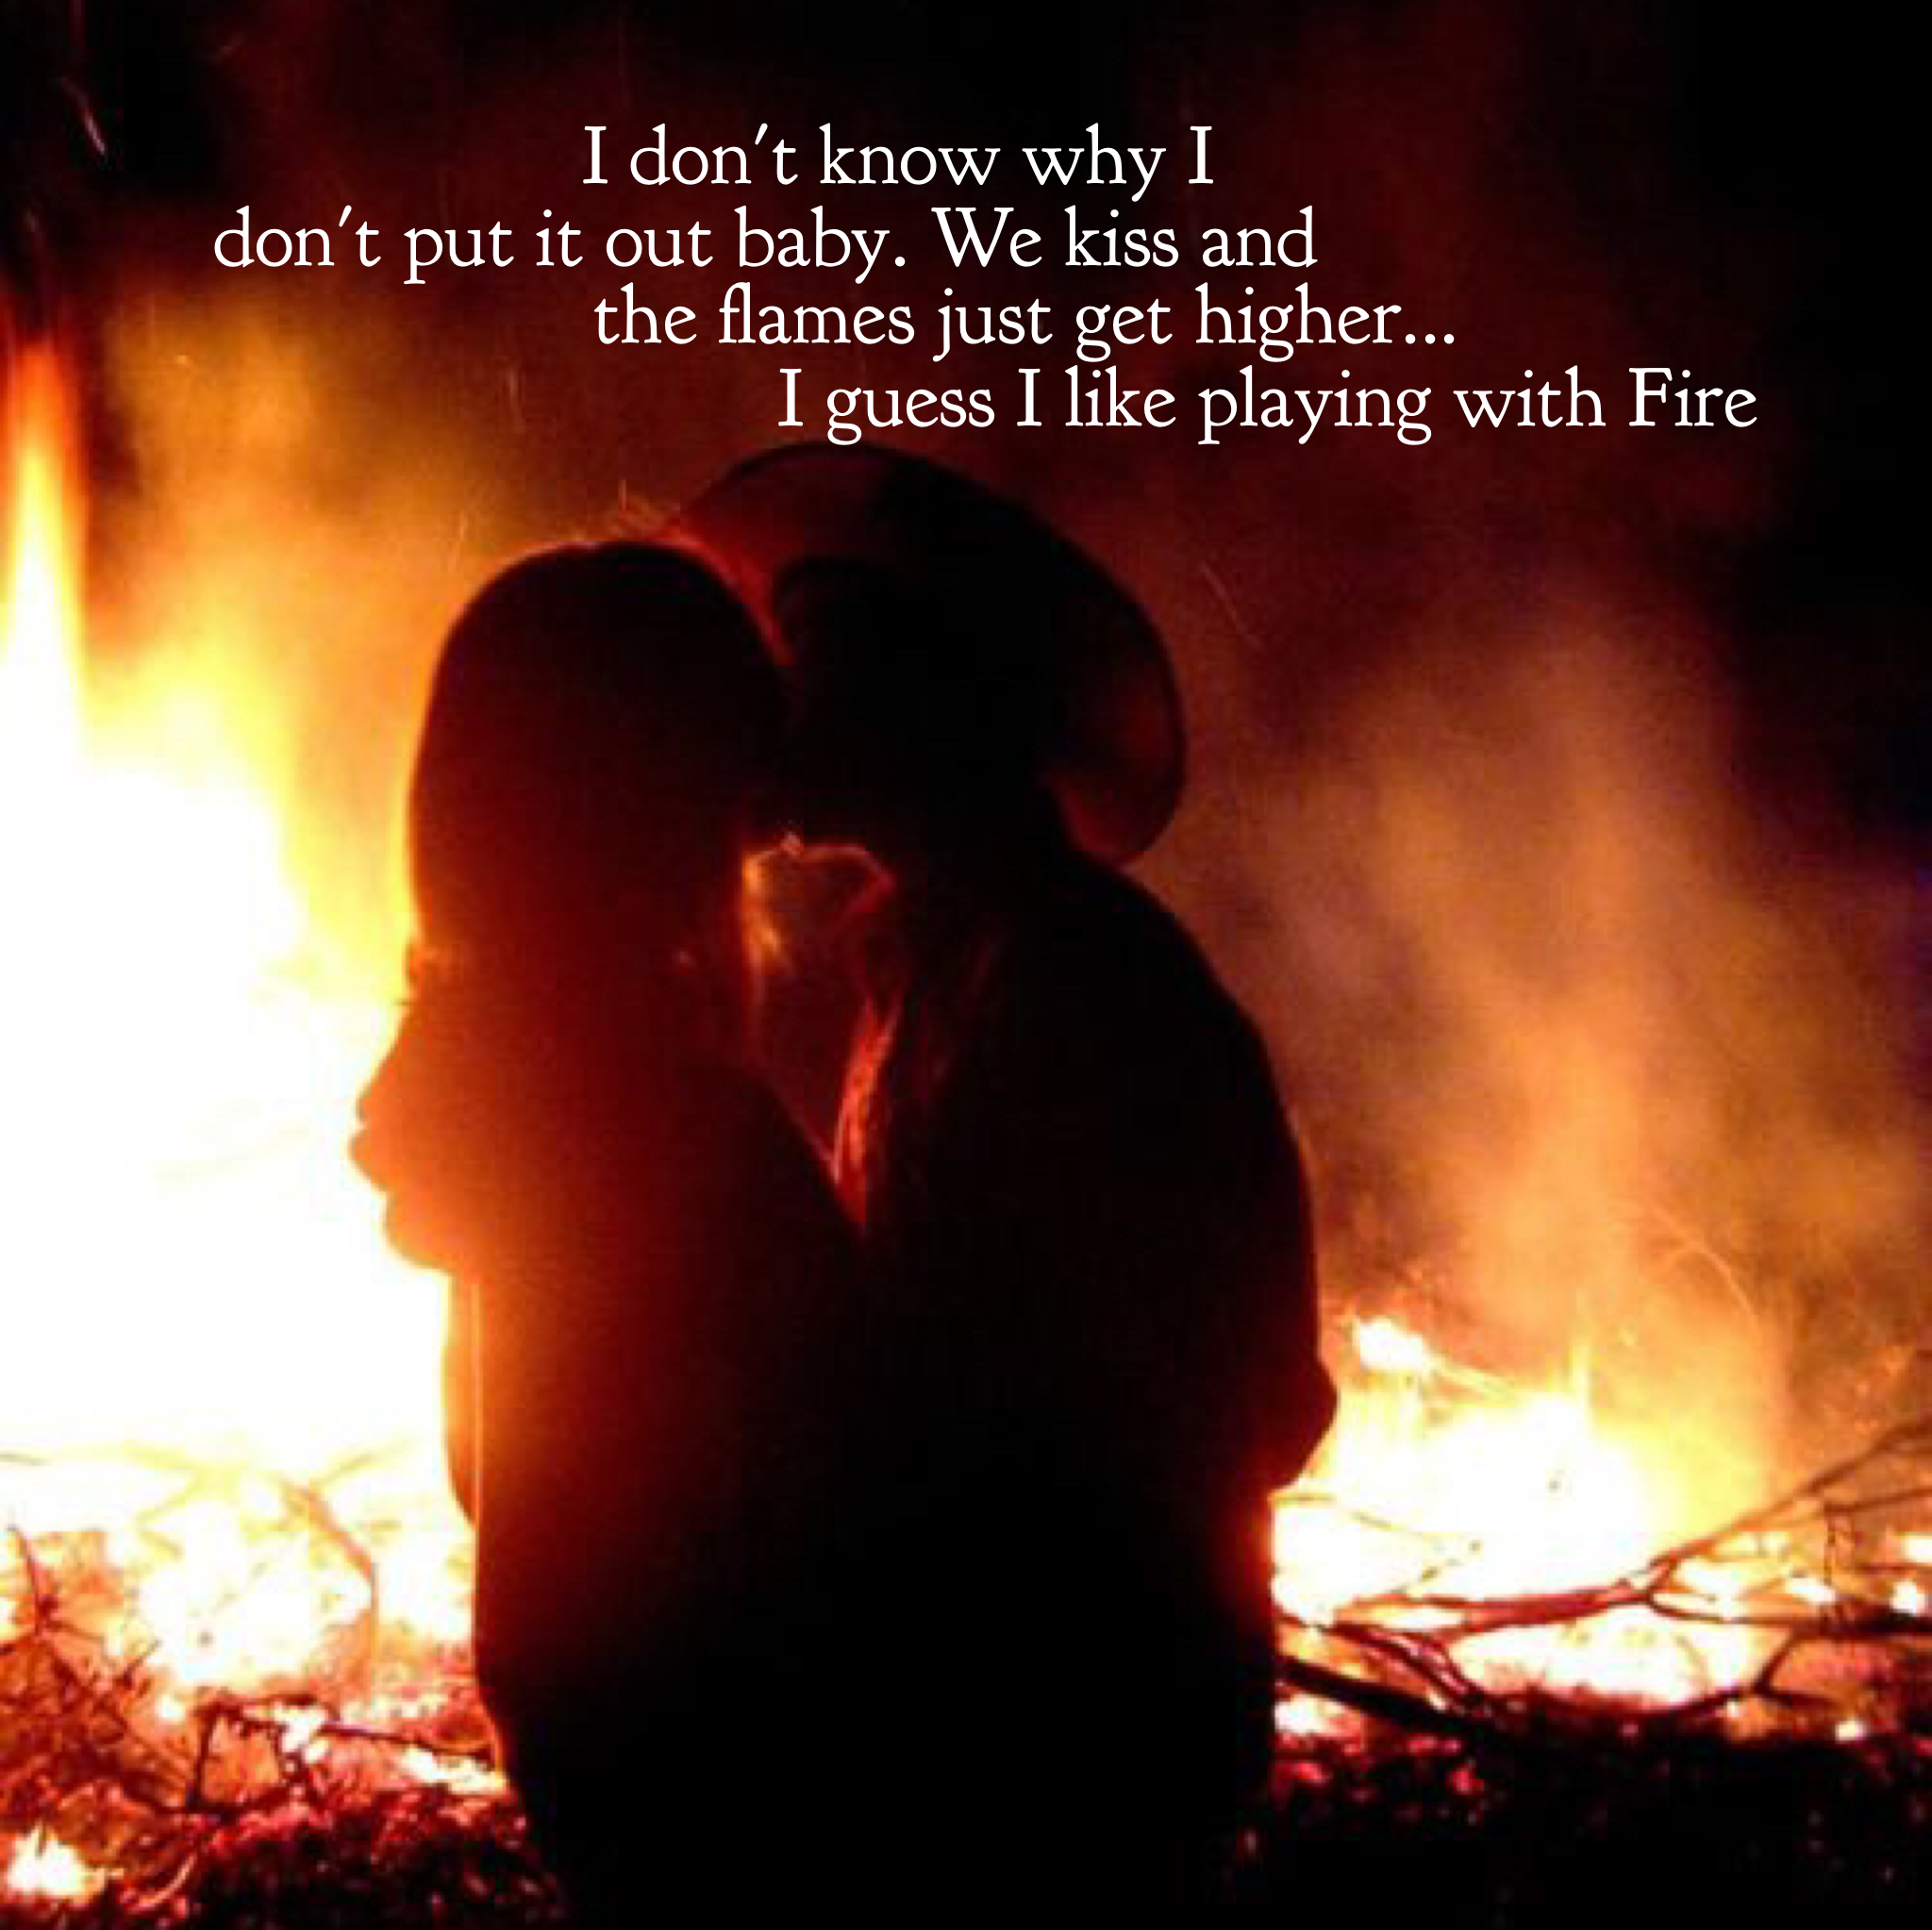 Playing With Fire Thomas Rhett Song Lyrics Song Lyrics